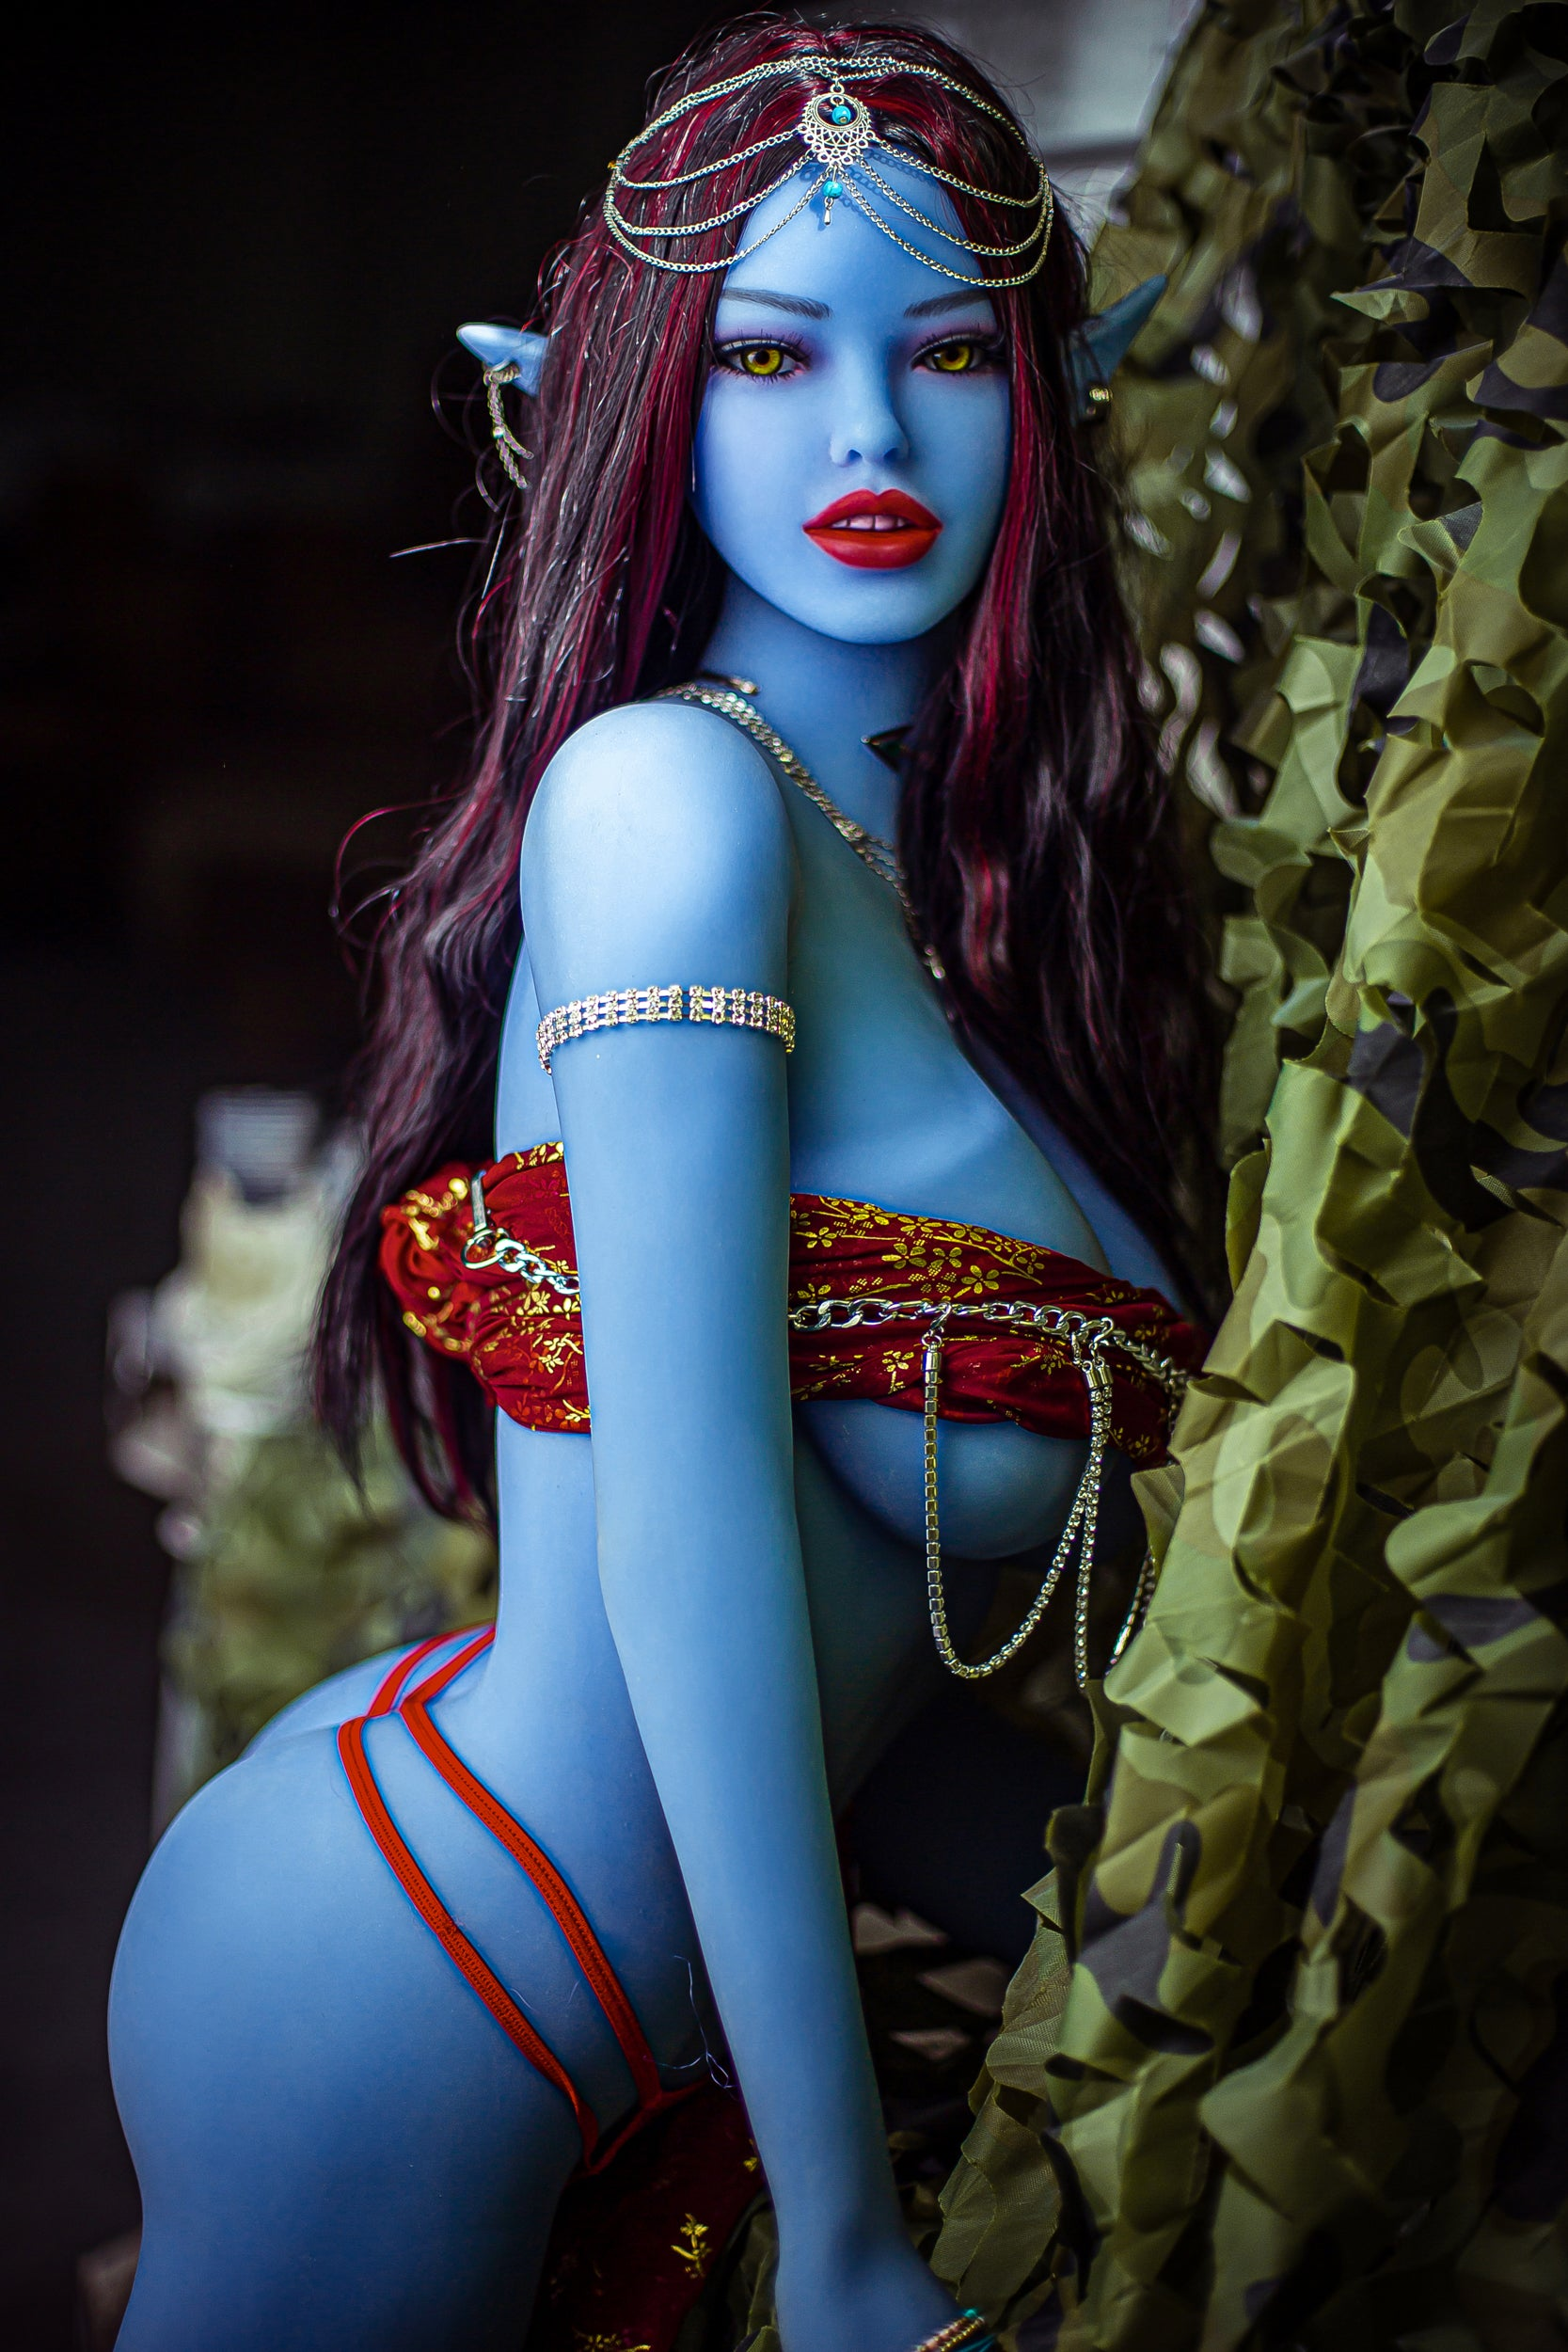 Azuleja - Avatar-like Sex Doll